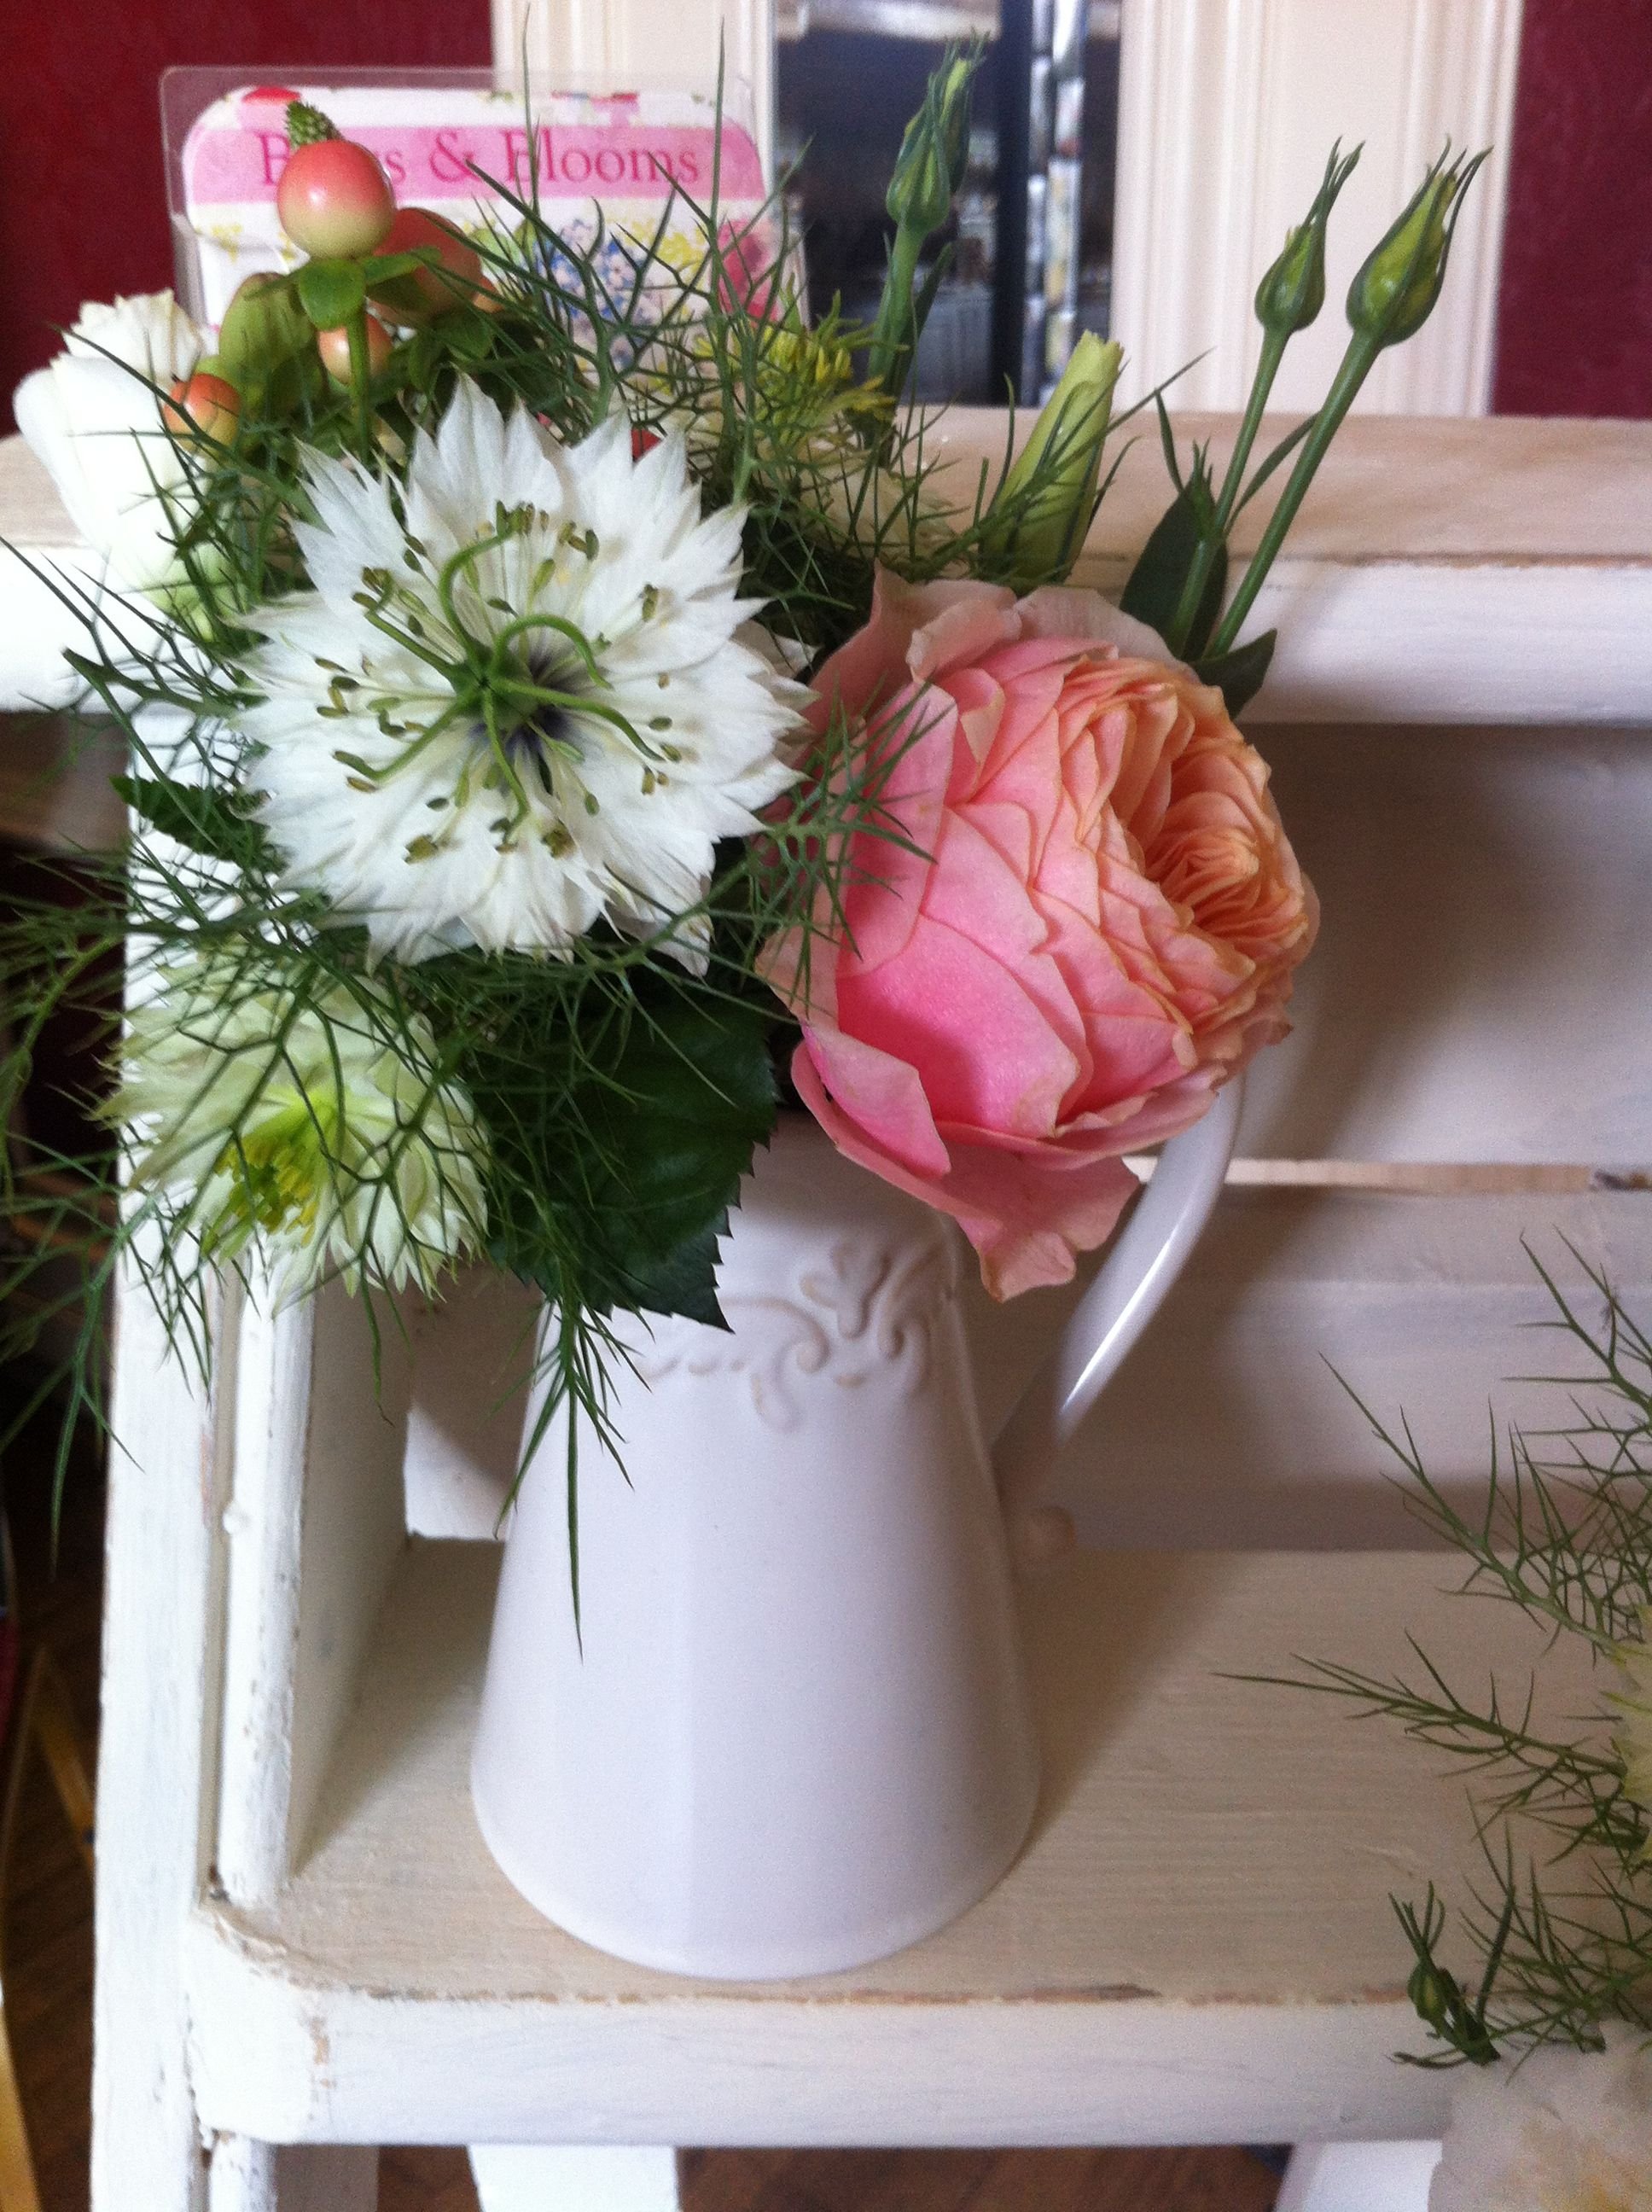 Small White Jug Arrangement Nigella Also Known As Love In A Mist Shown Here